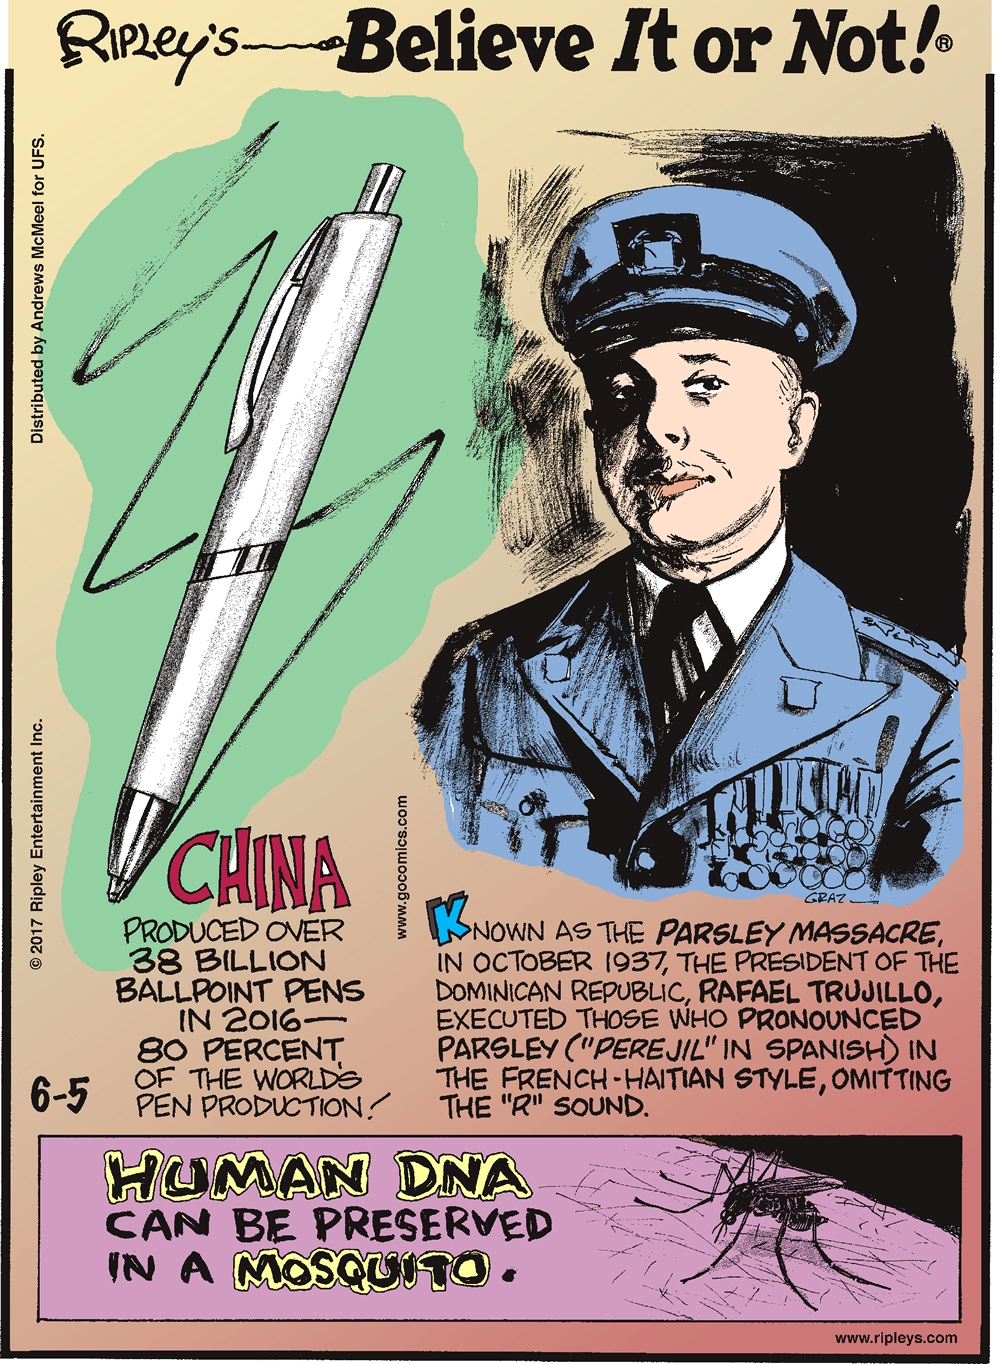 "China produced over 38 billion ballpoint pens in 2016 - 80 percent of the world's pen production!-------------------- Known as the Parsley Massacre, in October 1937, the President of the Dominican Republic, Rafael Trujillo, executed those who pronounced parsley (""perejil"" in Spanish) in the French-Haitian style, omitting the ""R"" sound.------------------ Human DNA can be preserved in a mosquito."